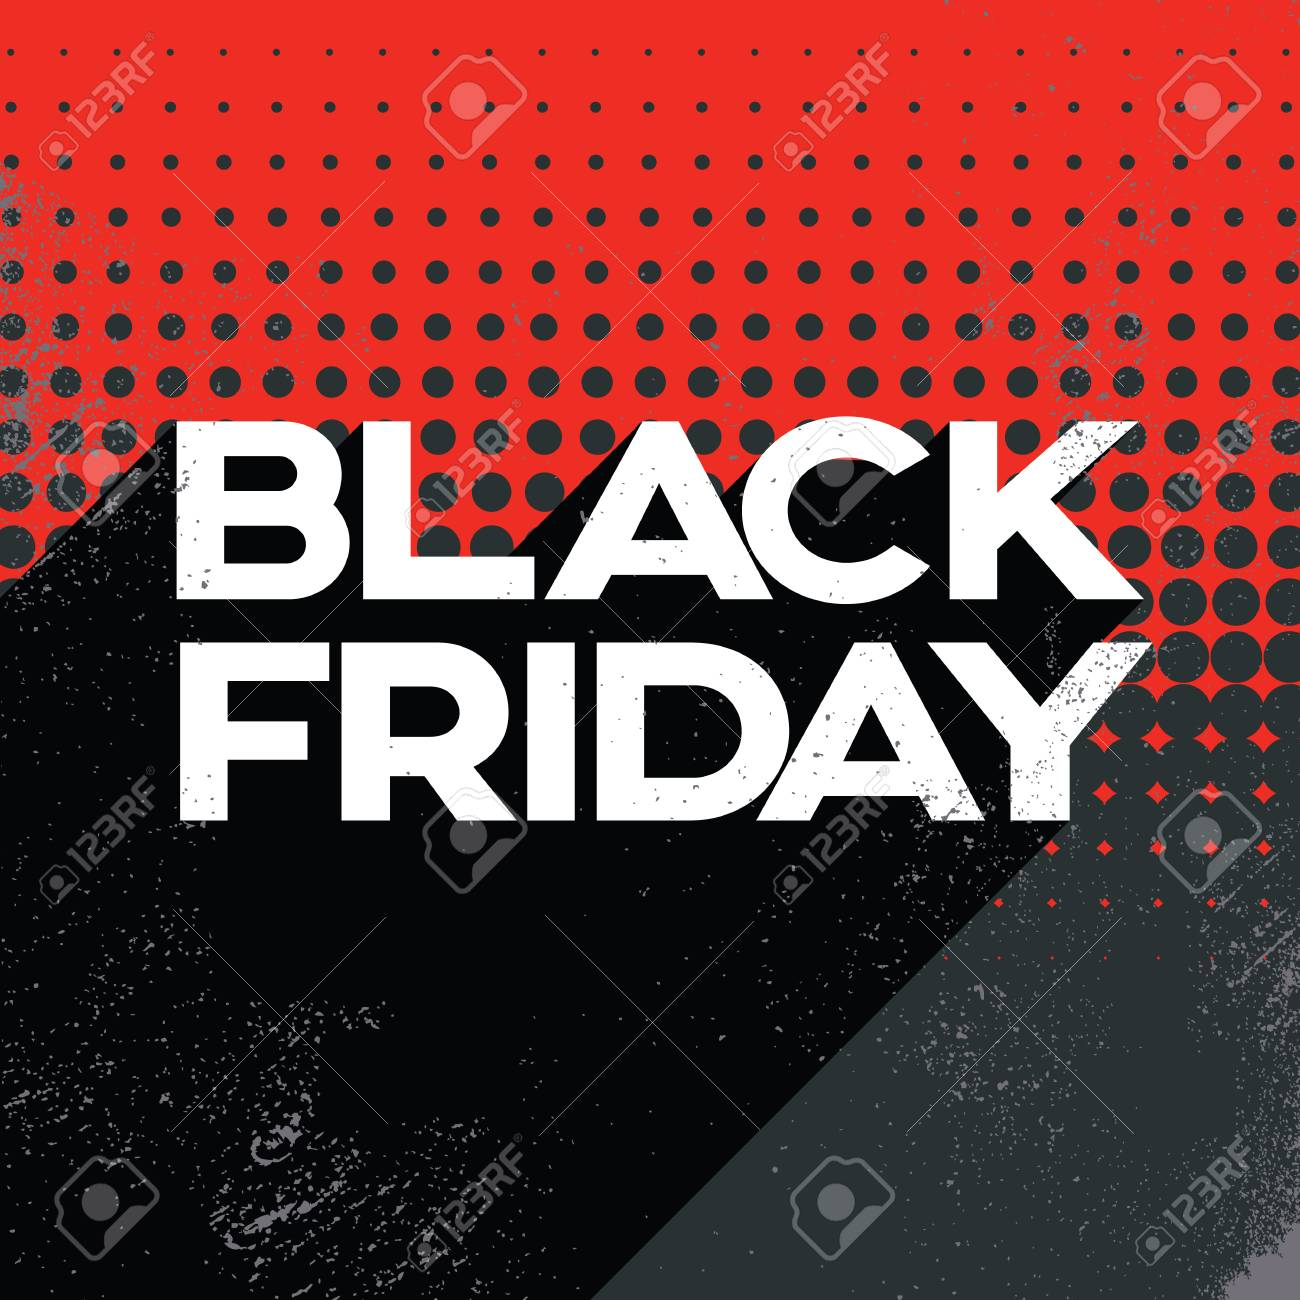 Black friday big sale poster banner template with long shadow.